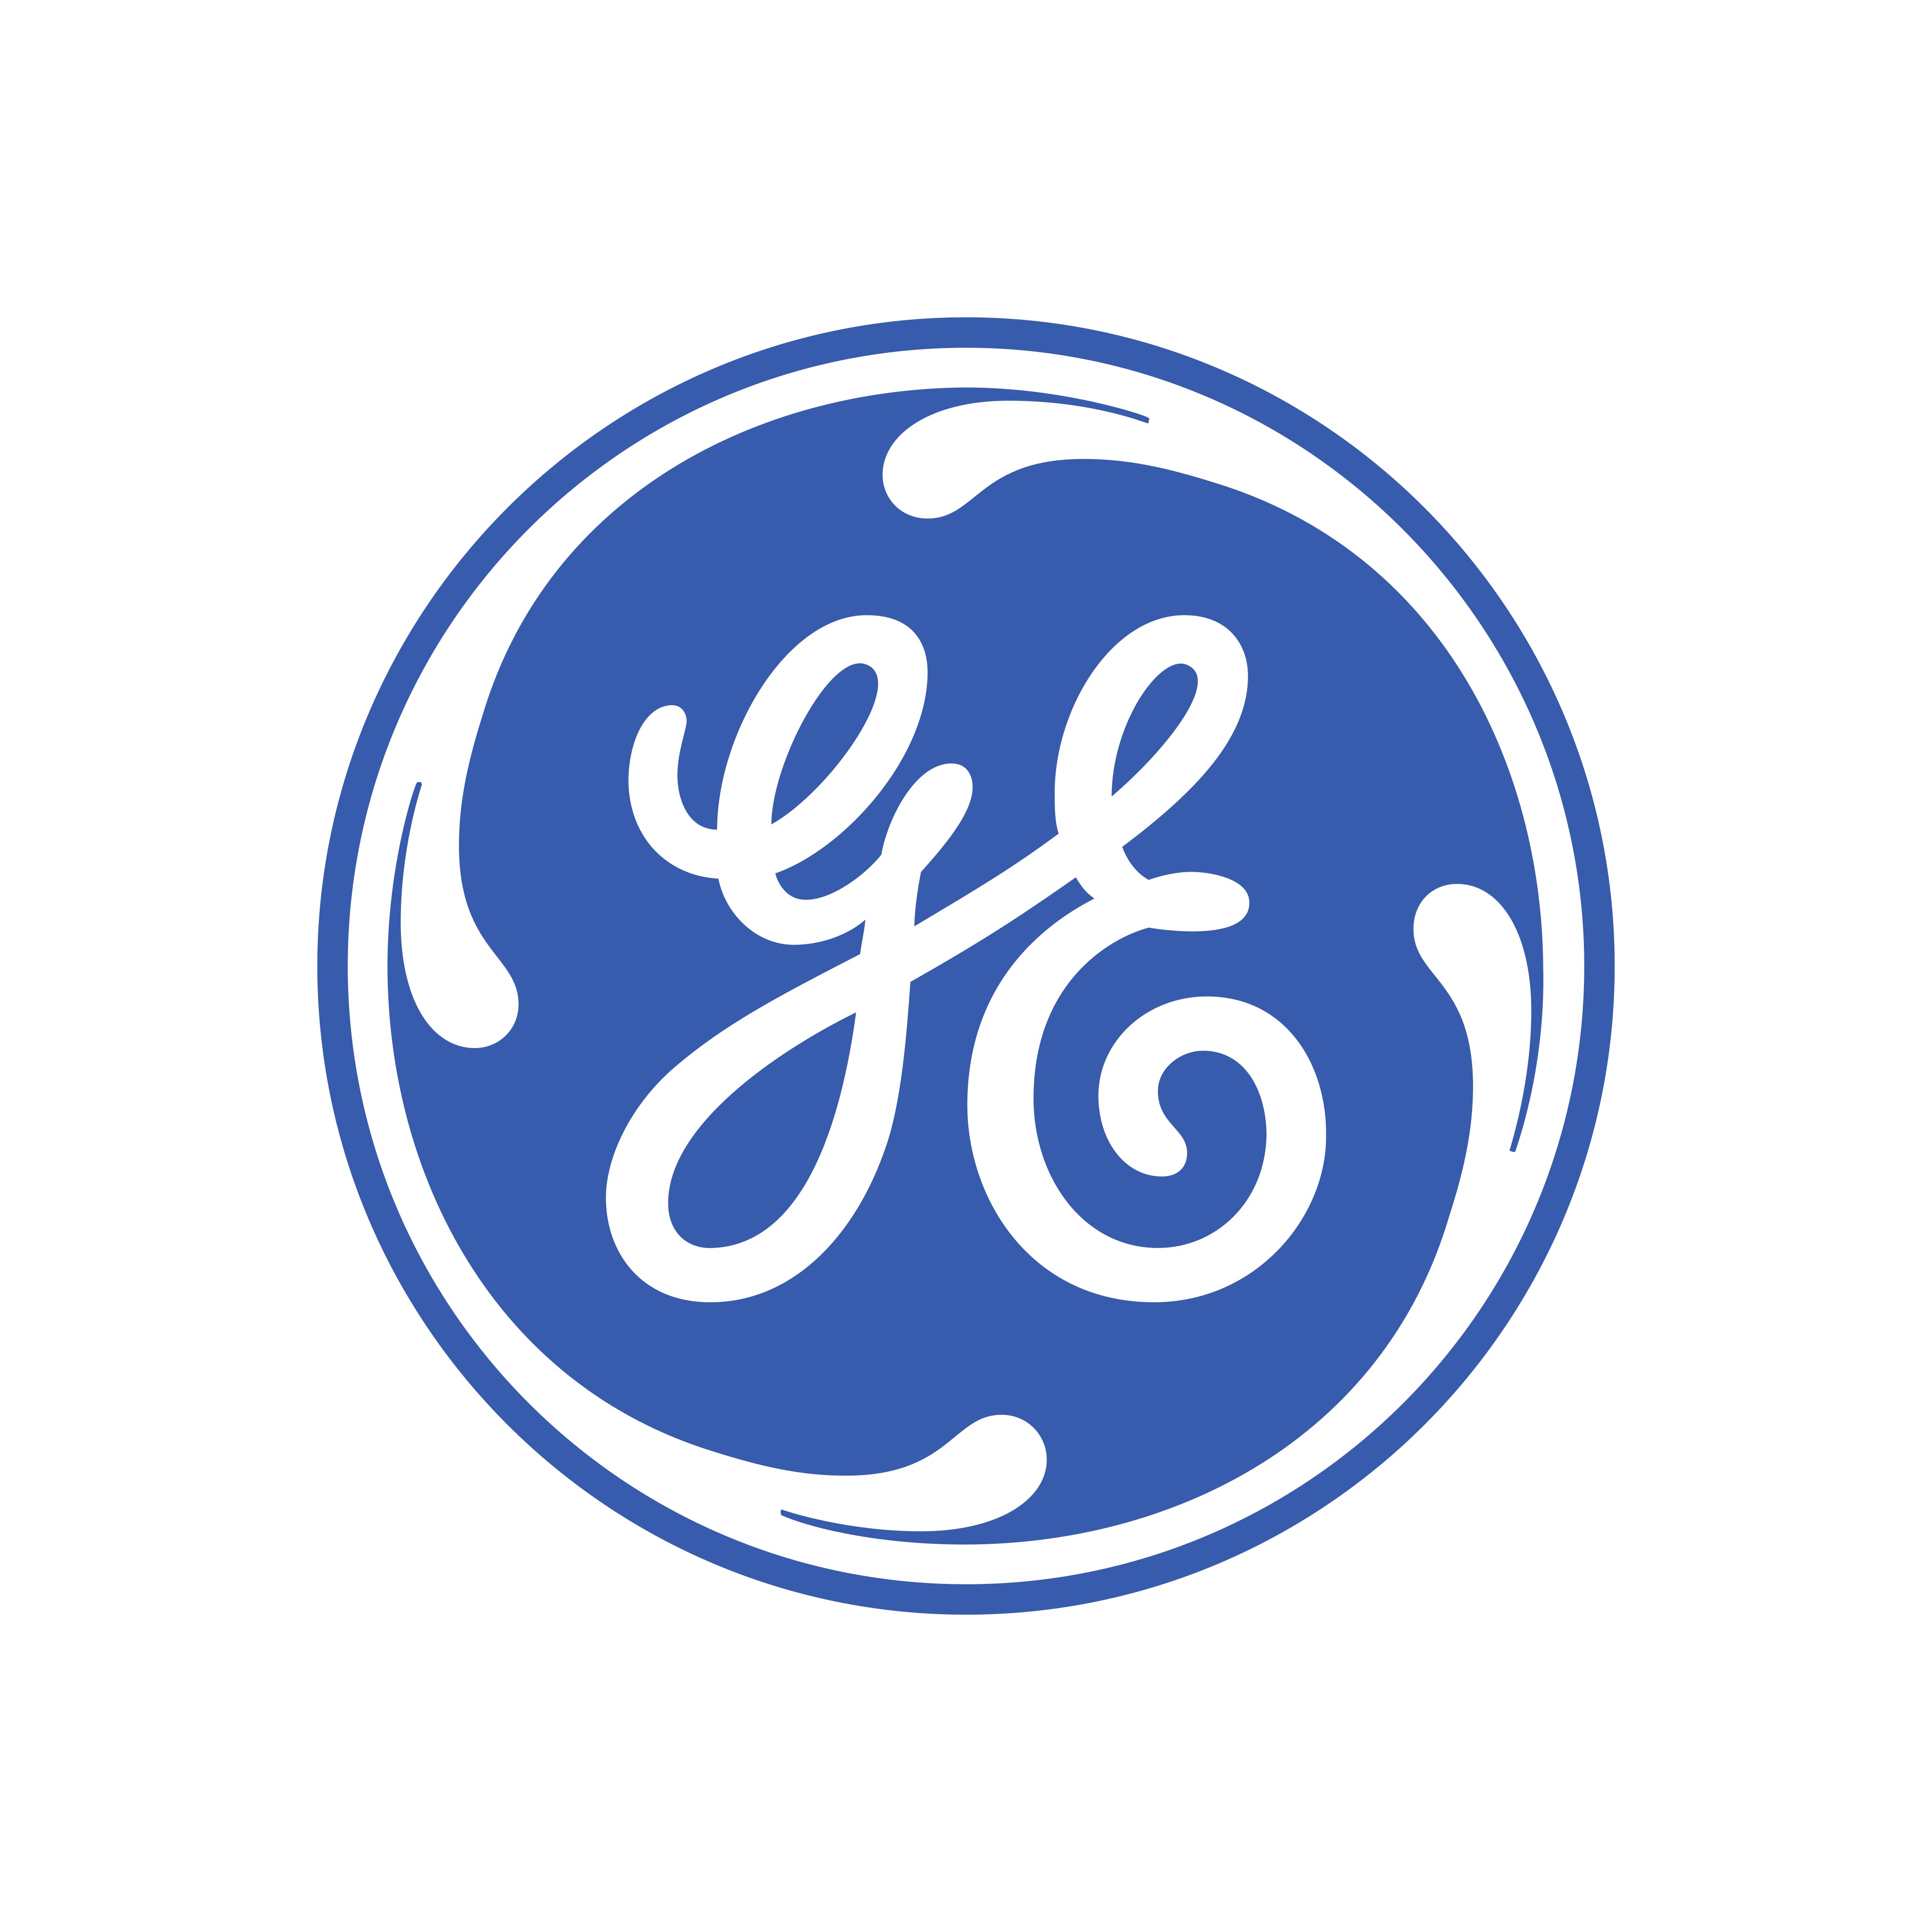 ge general electric logo 0 - GE – General Electric Logo